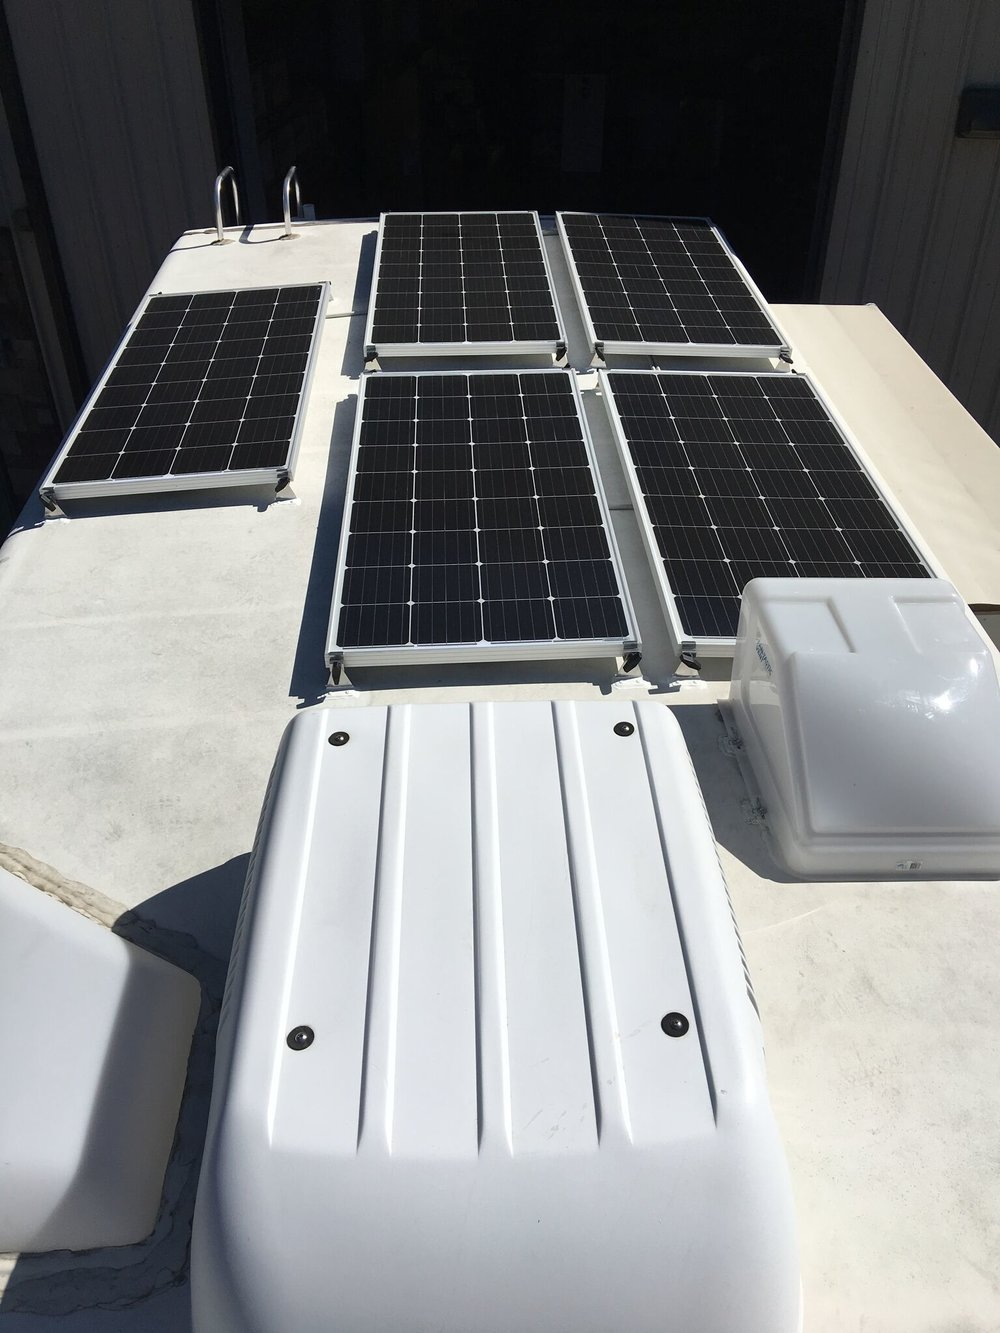 Solar Panel Installation For Rvs Trailers Am 2013 Fleetwood Bounder Wiring Diagrams Equipment Added 5x Sf180 Kits 1x Roof Combiner Box Victron Bluesolar Smart